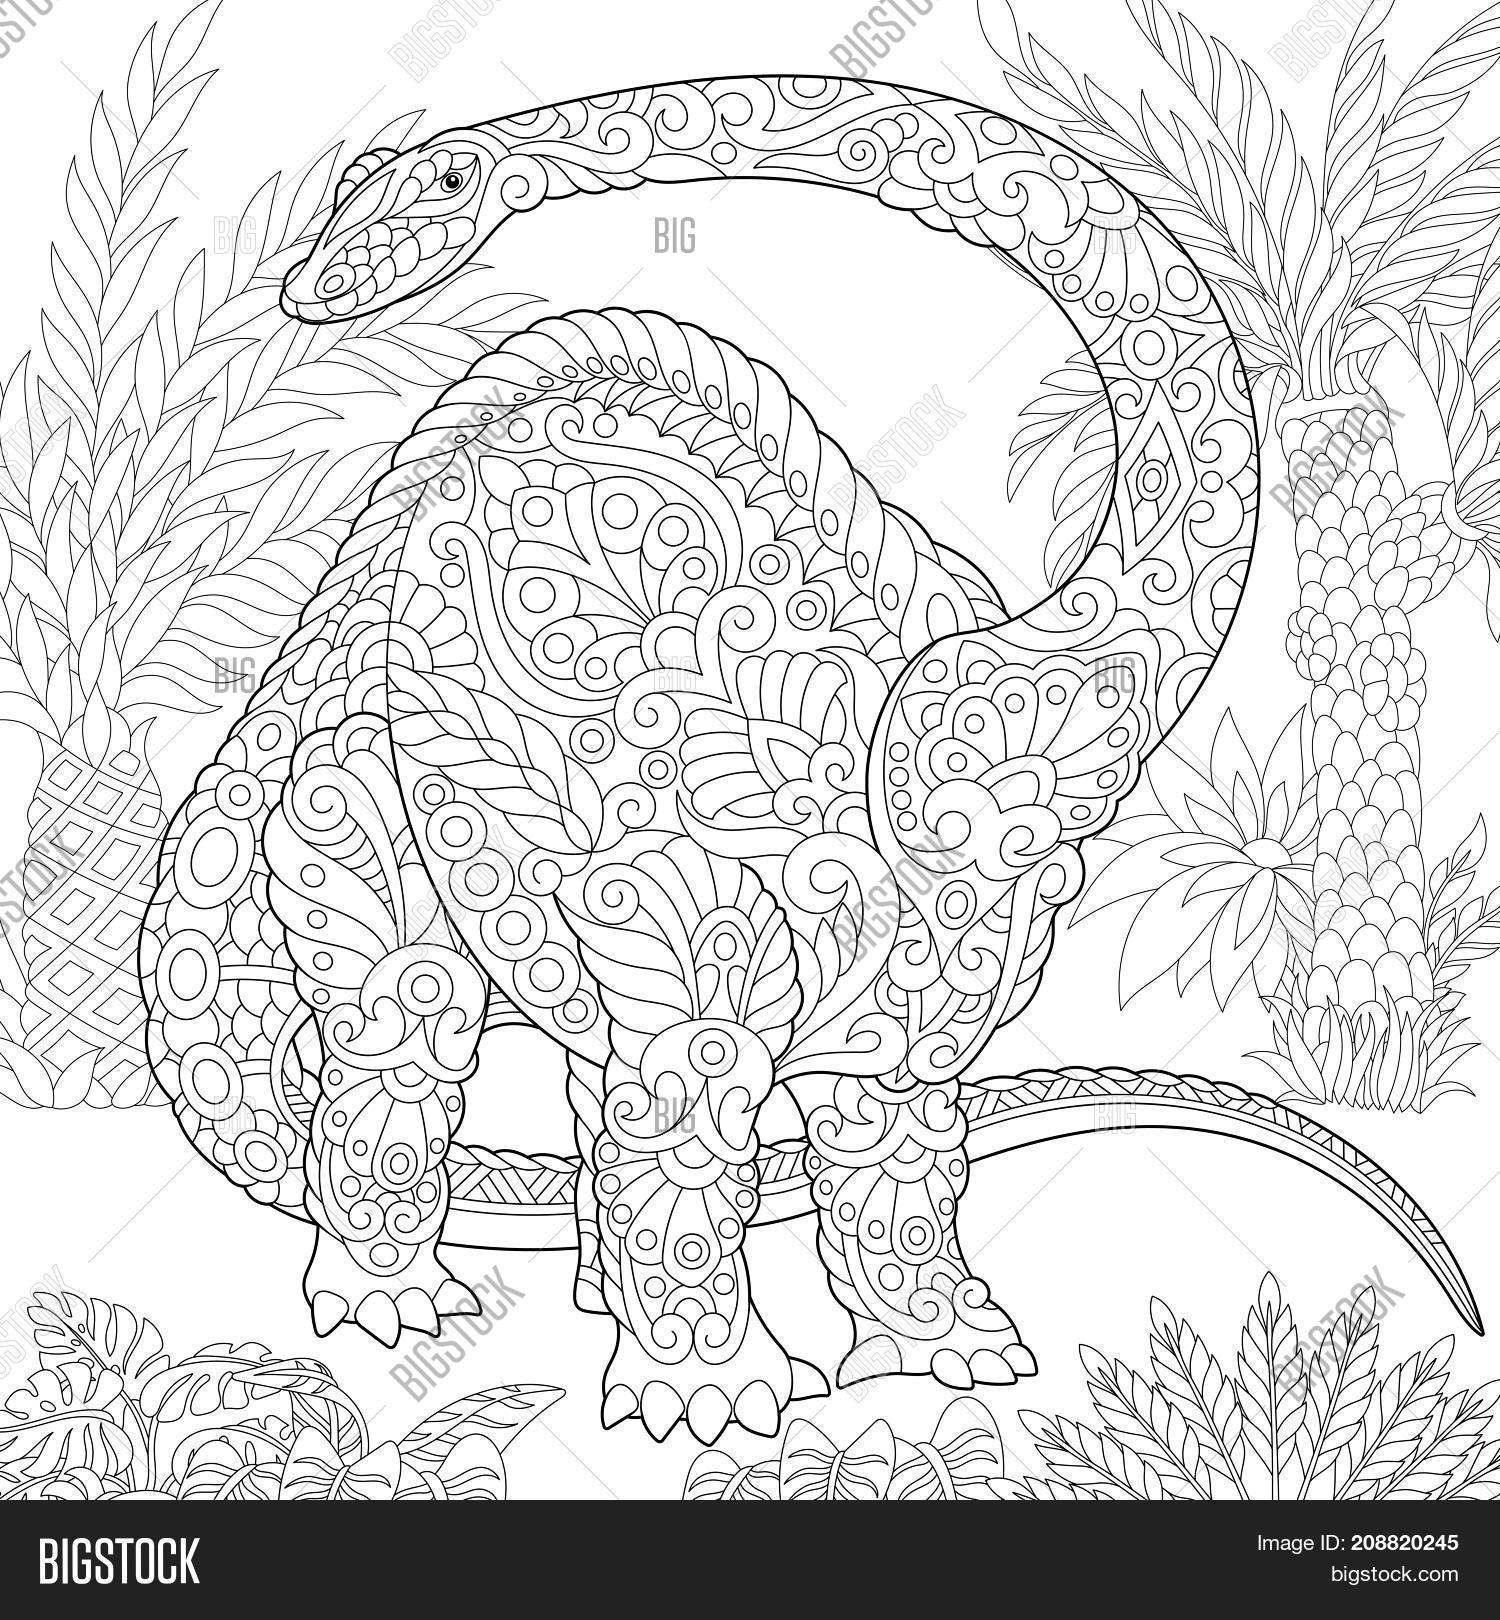 Coloring Page Image & Photo (Free Trial) | Bigstock